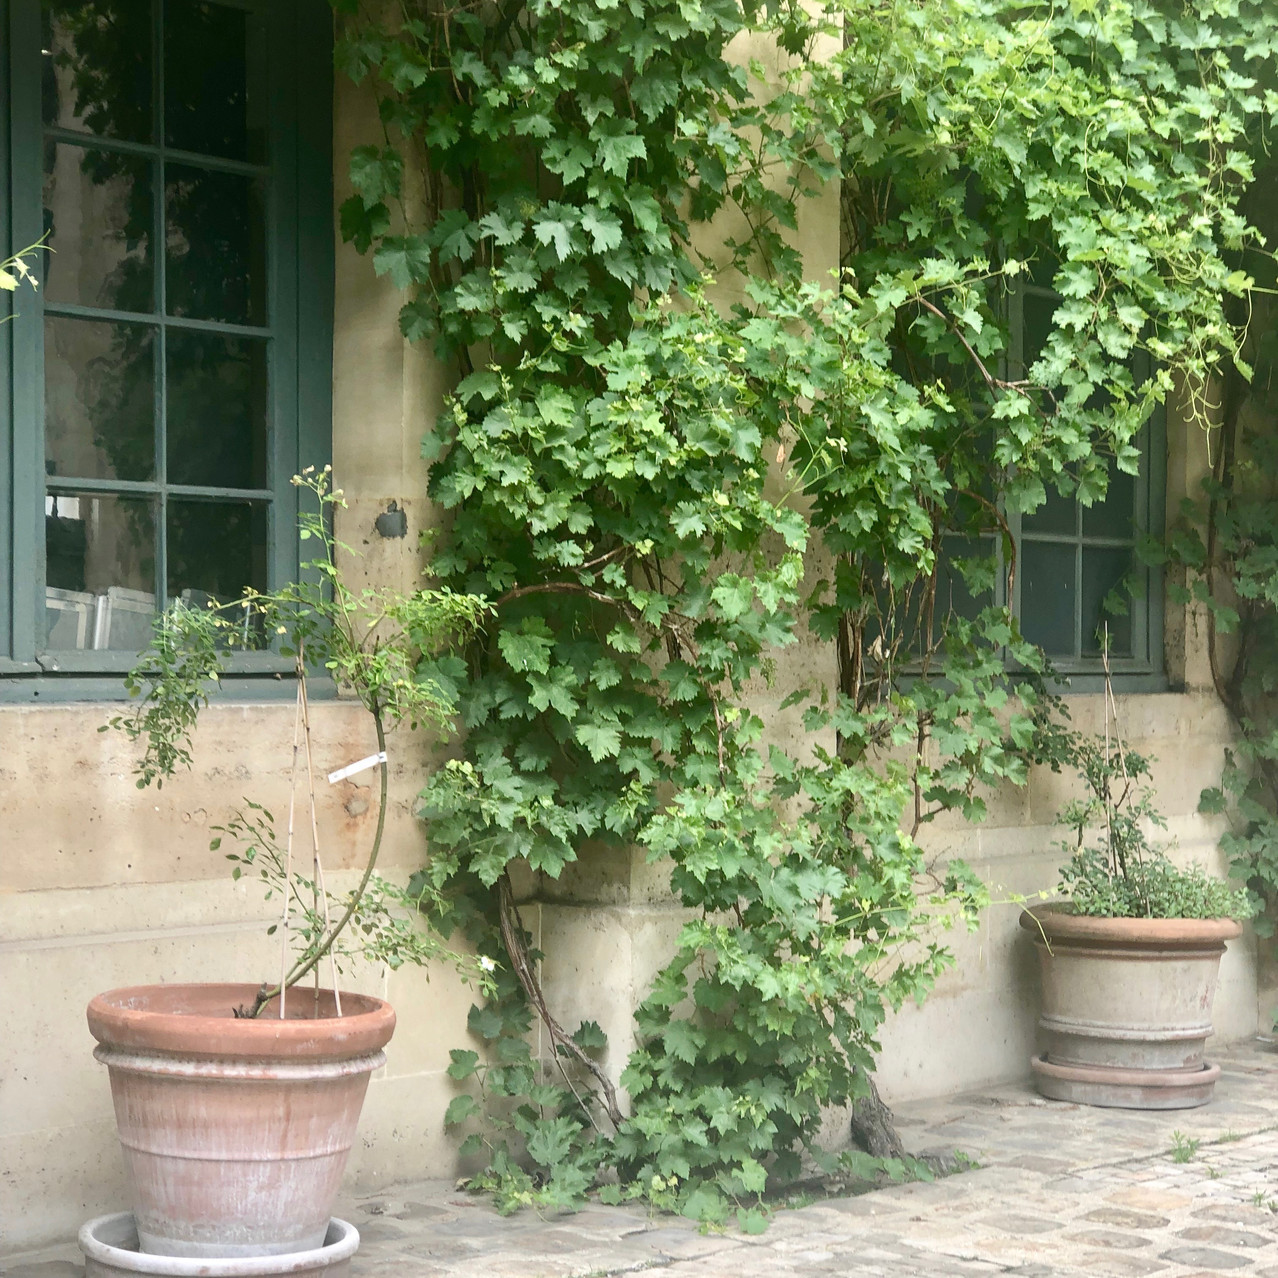 Courtyard of The Institute of France